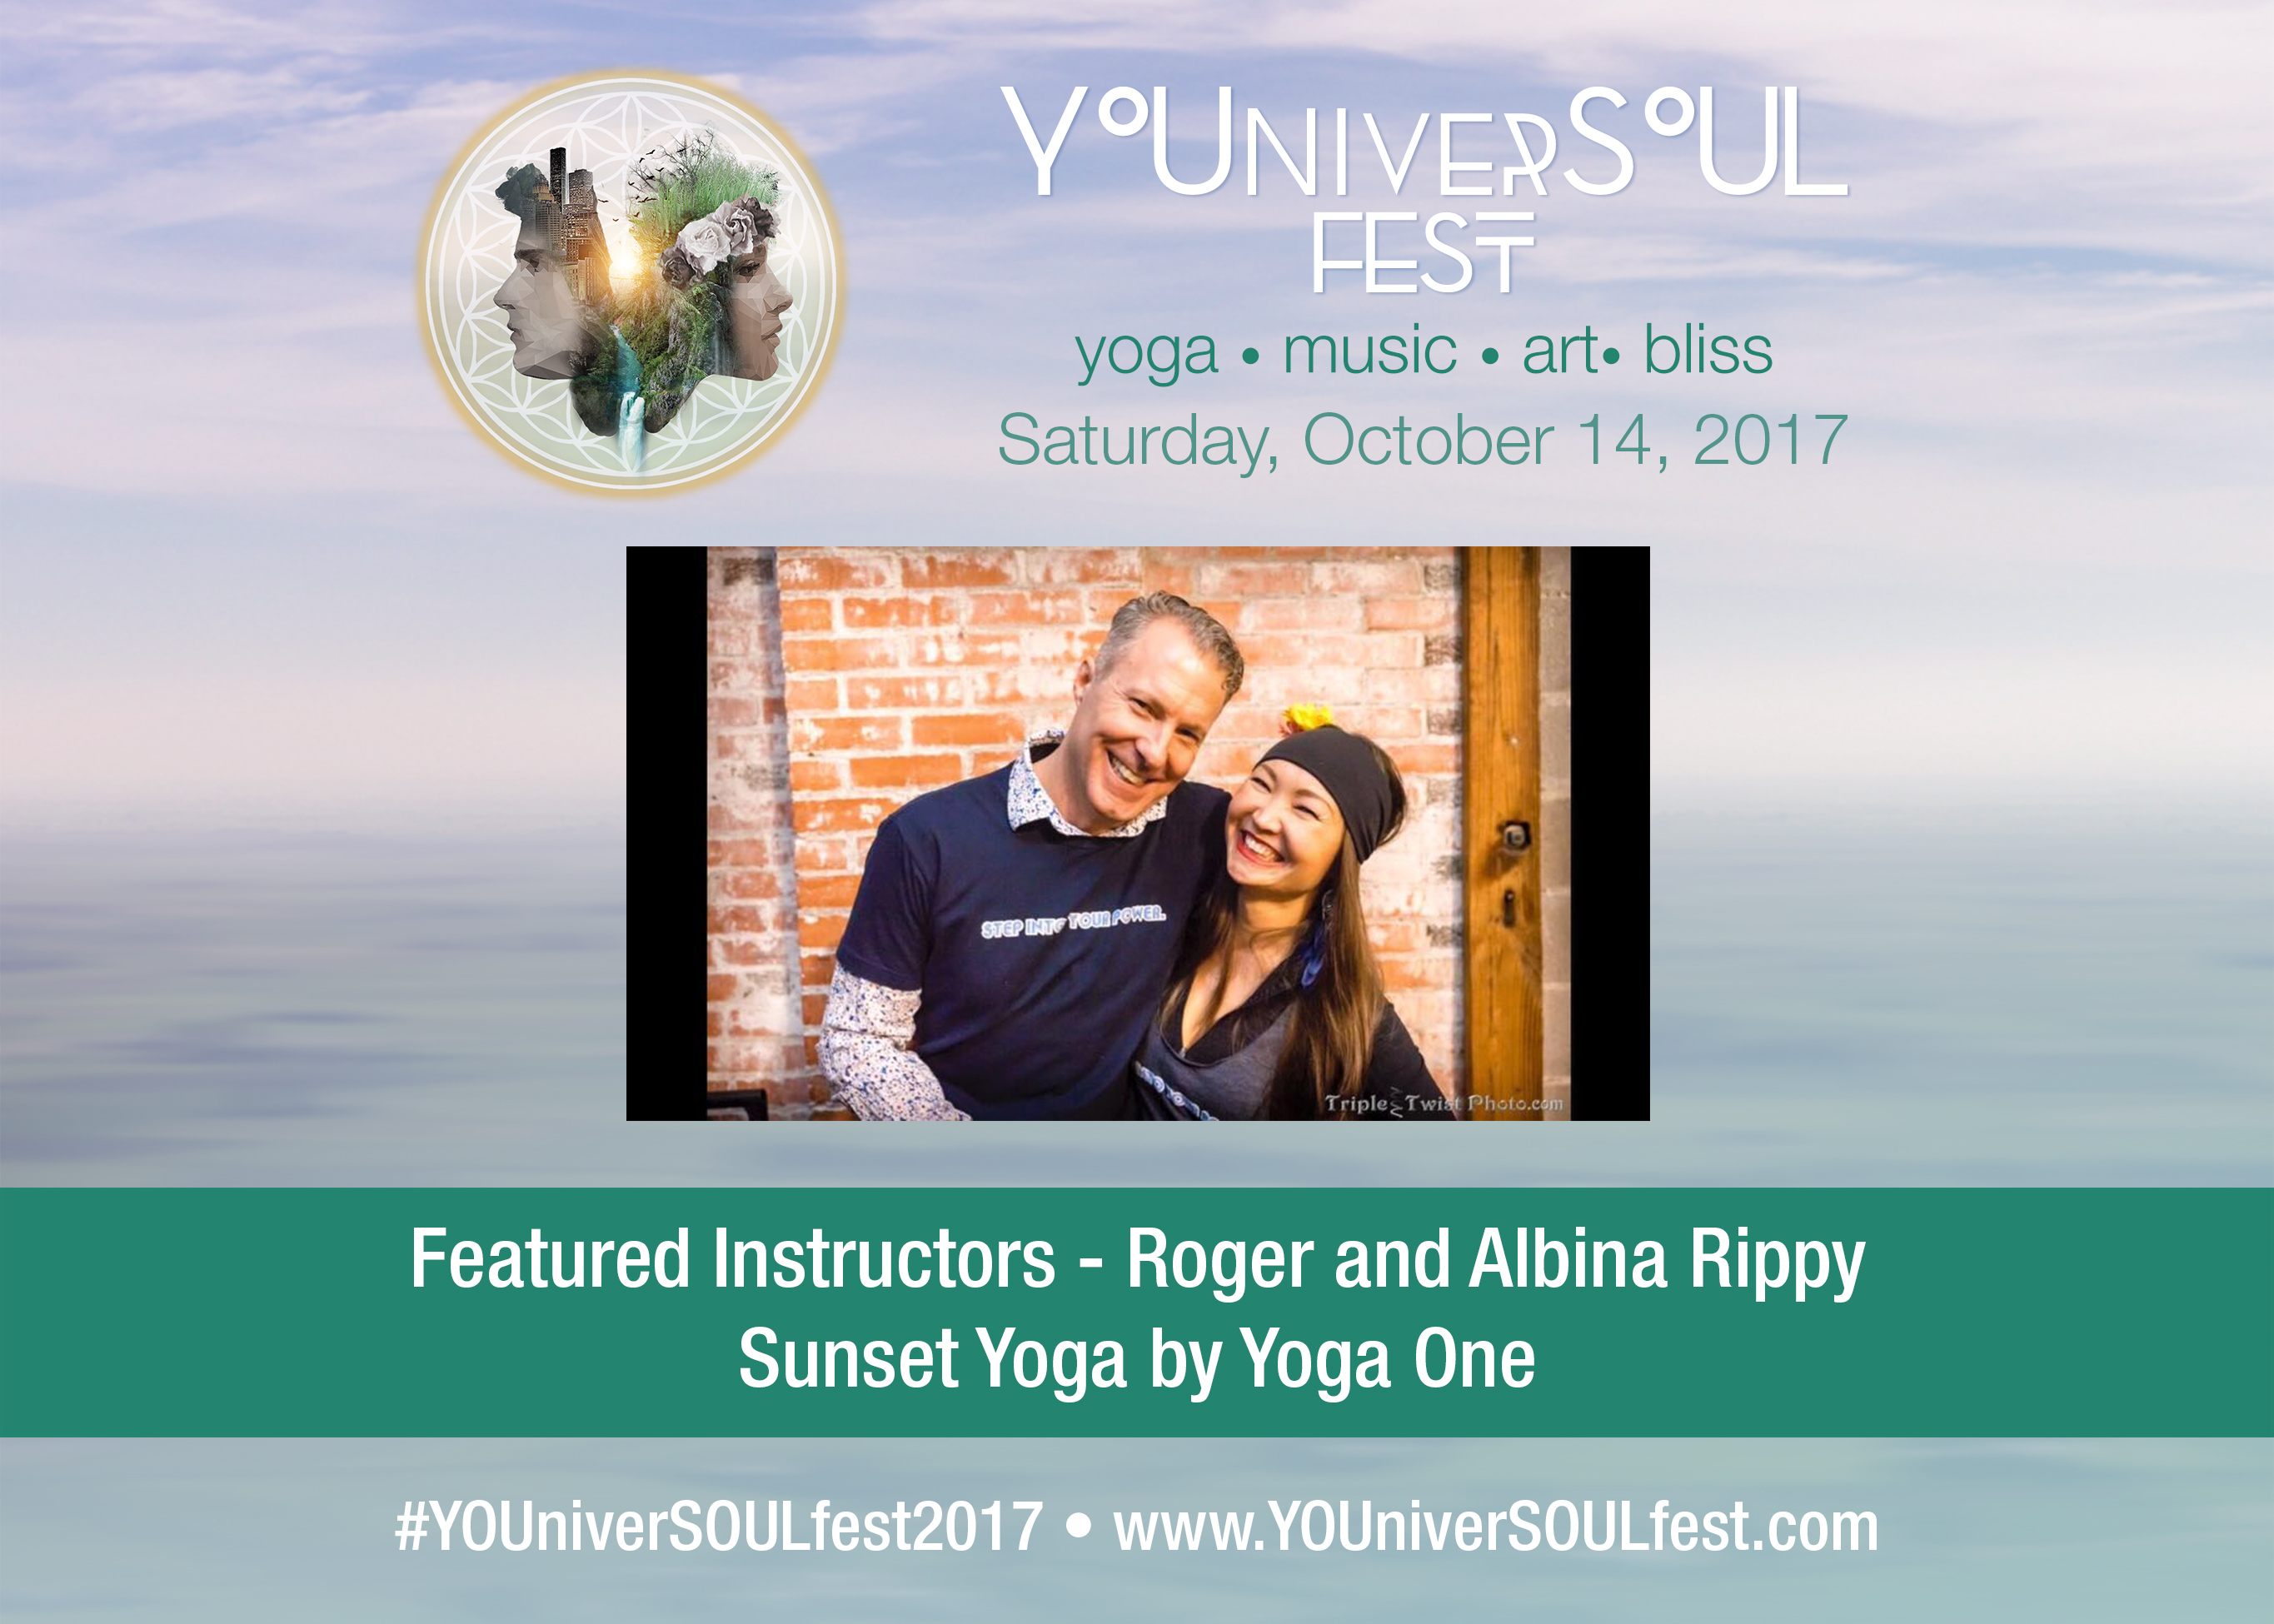 Sunset Yoga by Yoga One featuring Roger and Albina Rippy